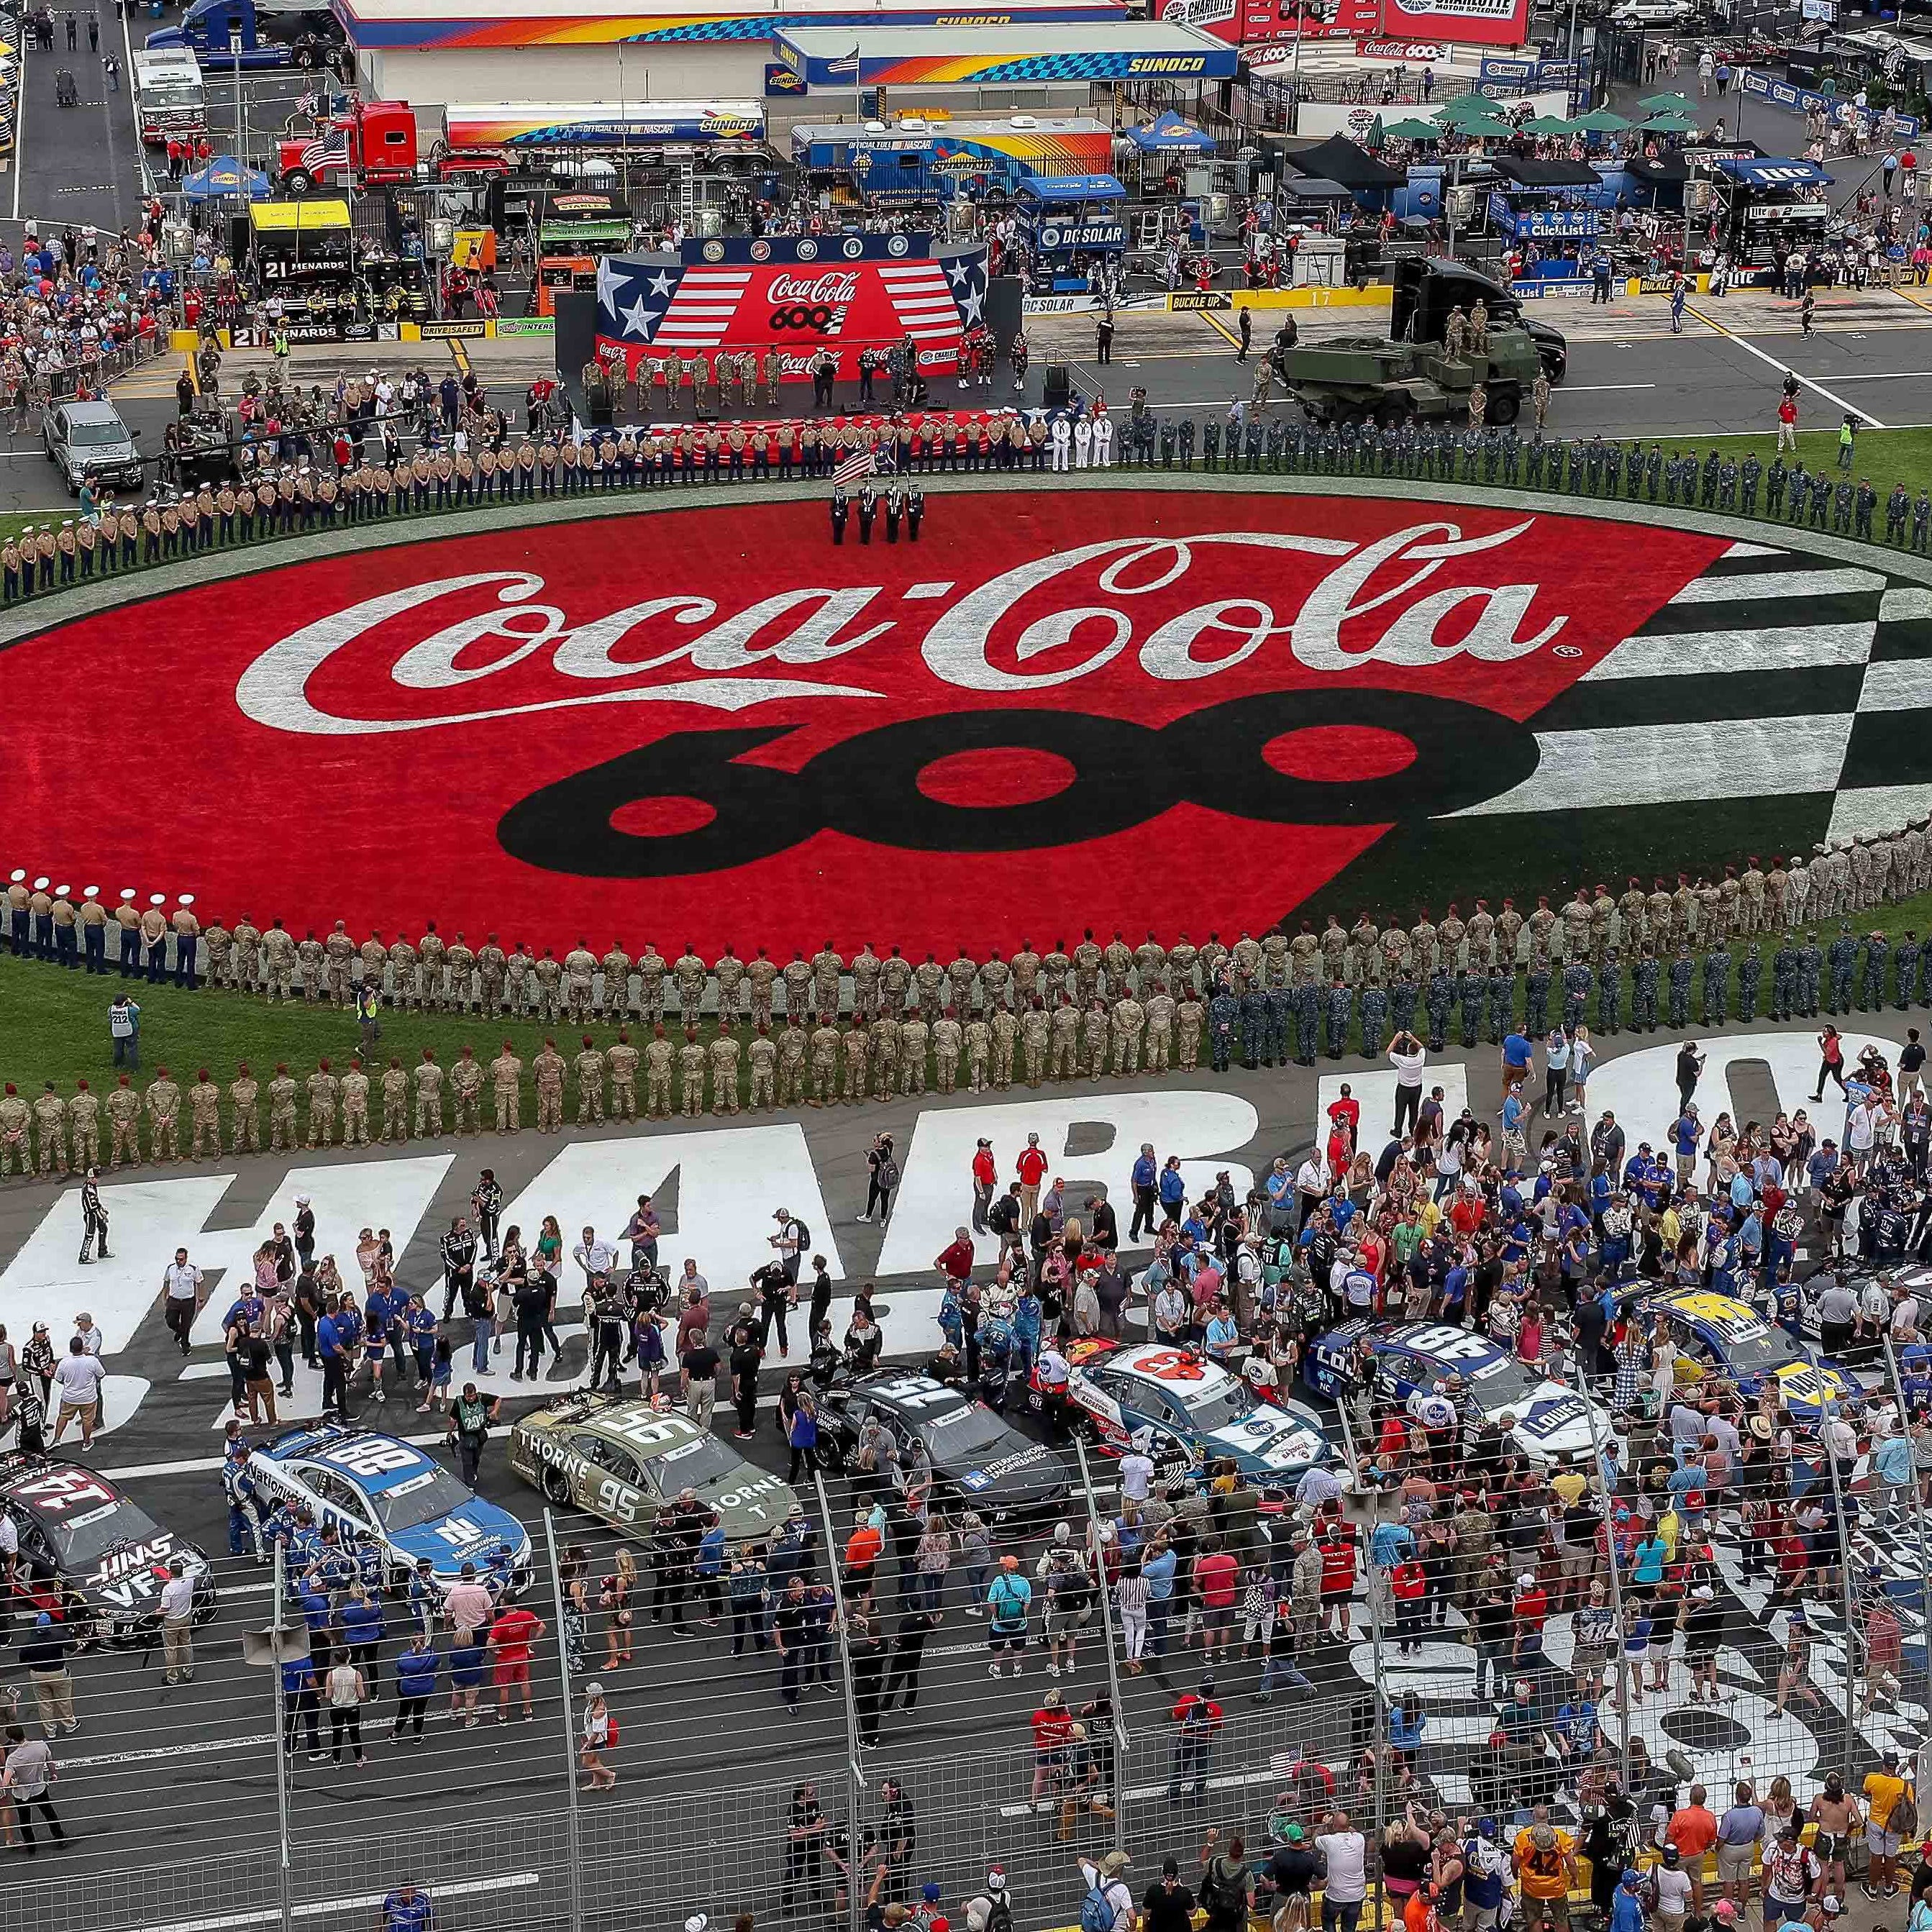 NASCAR: Coca-Cola 600 schedule, TV channel, start time